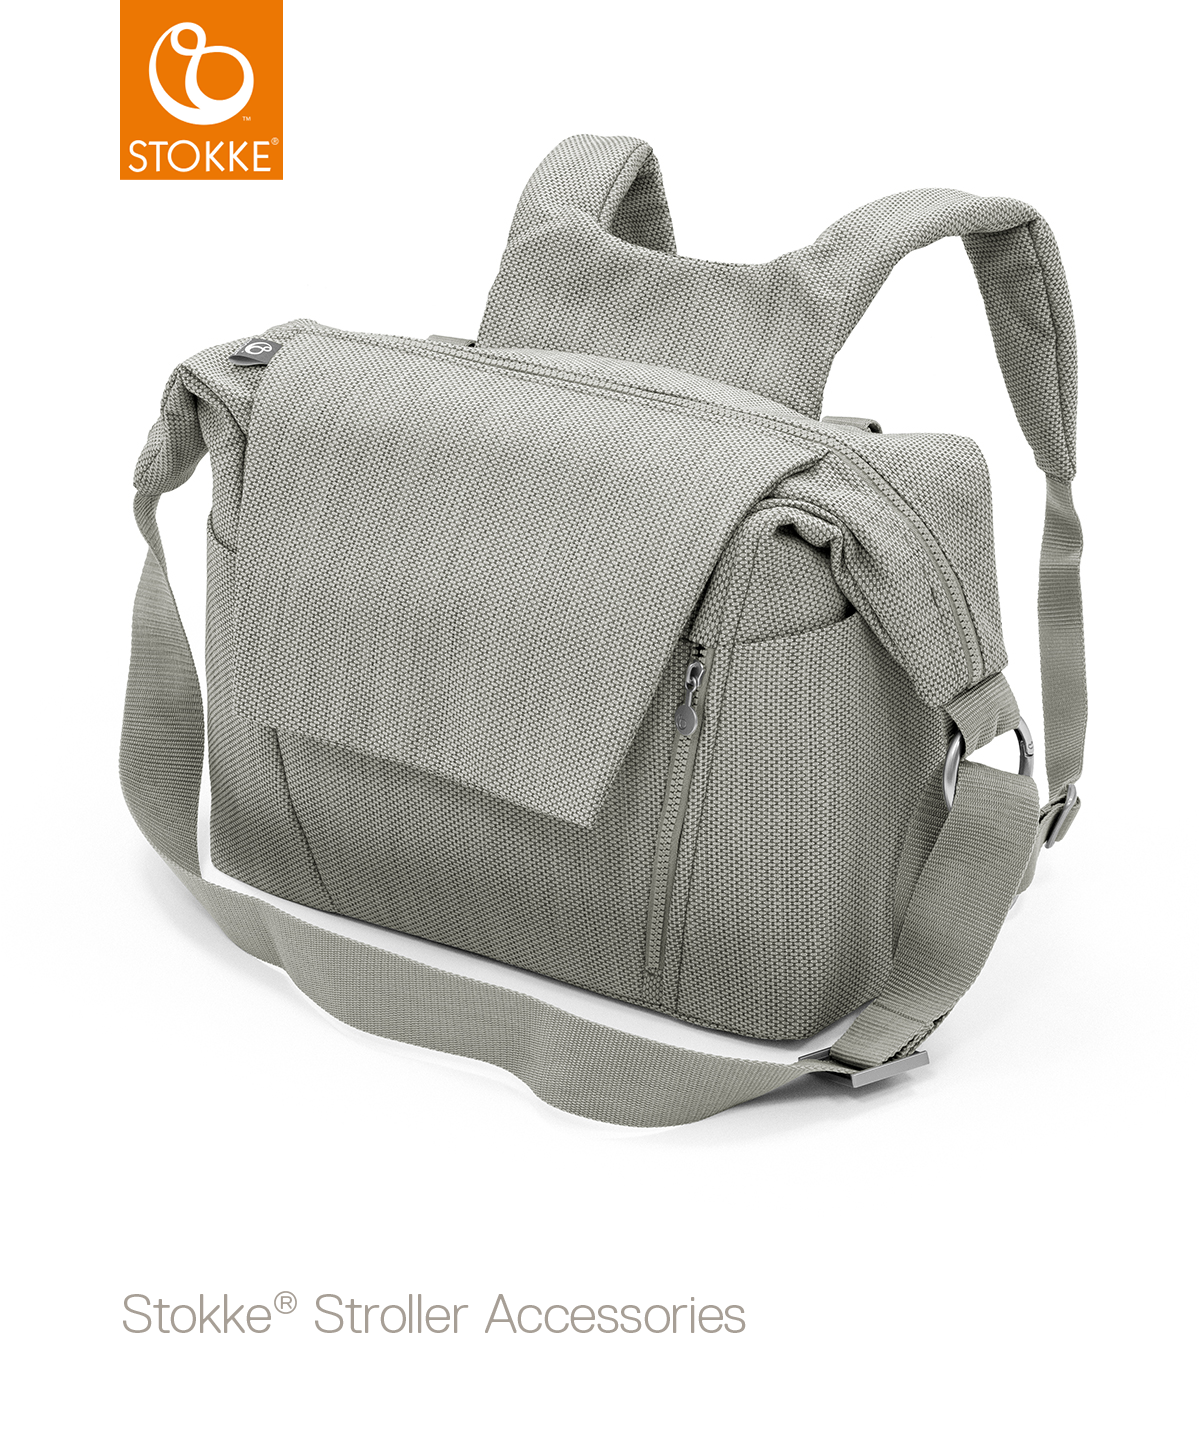 Сумка для коляски Stokke Changing Bag, Brushed Grey, серый твид